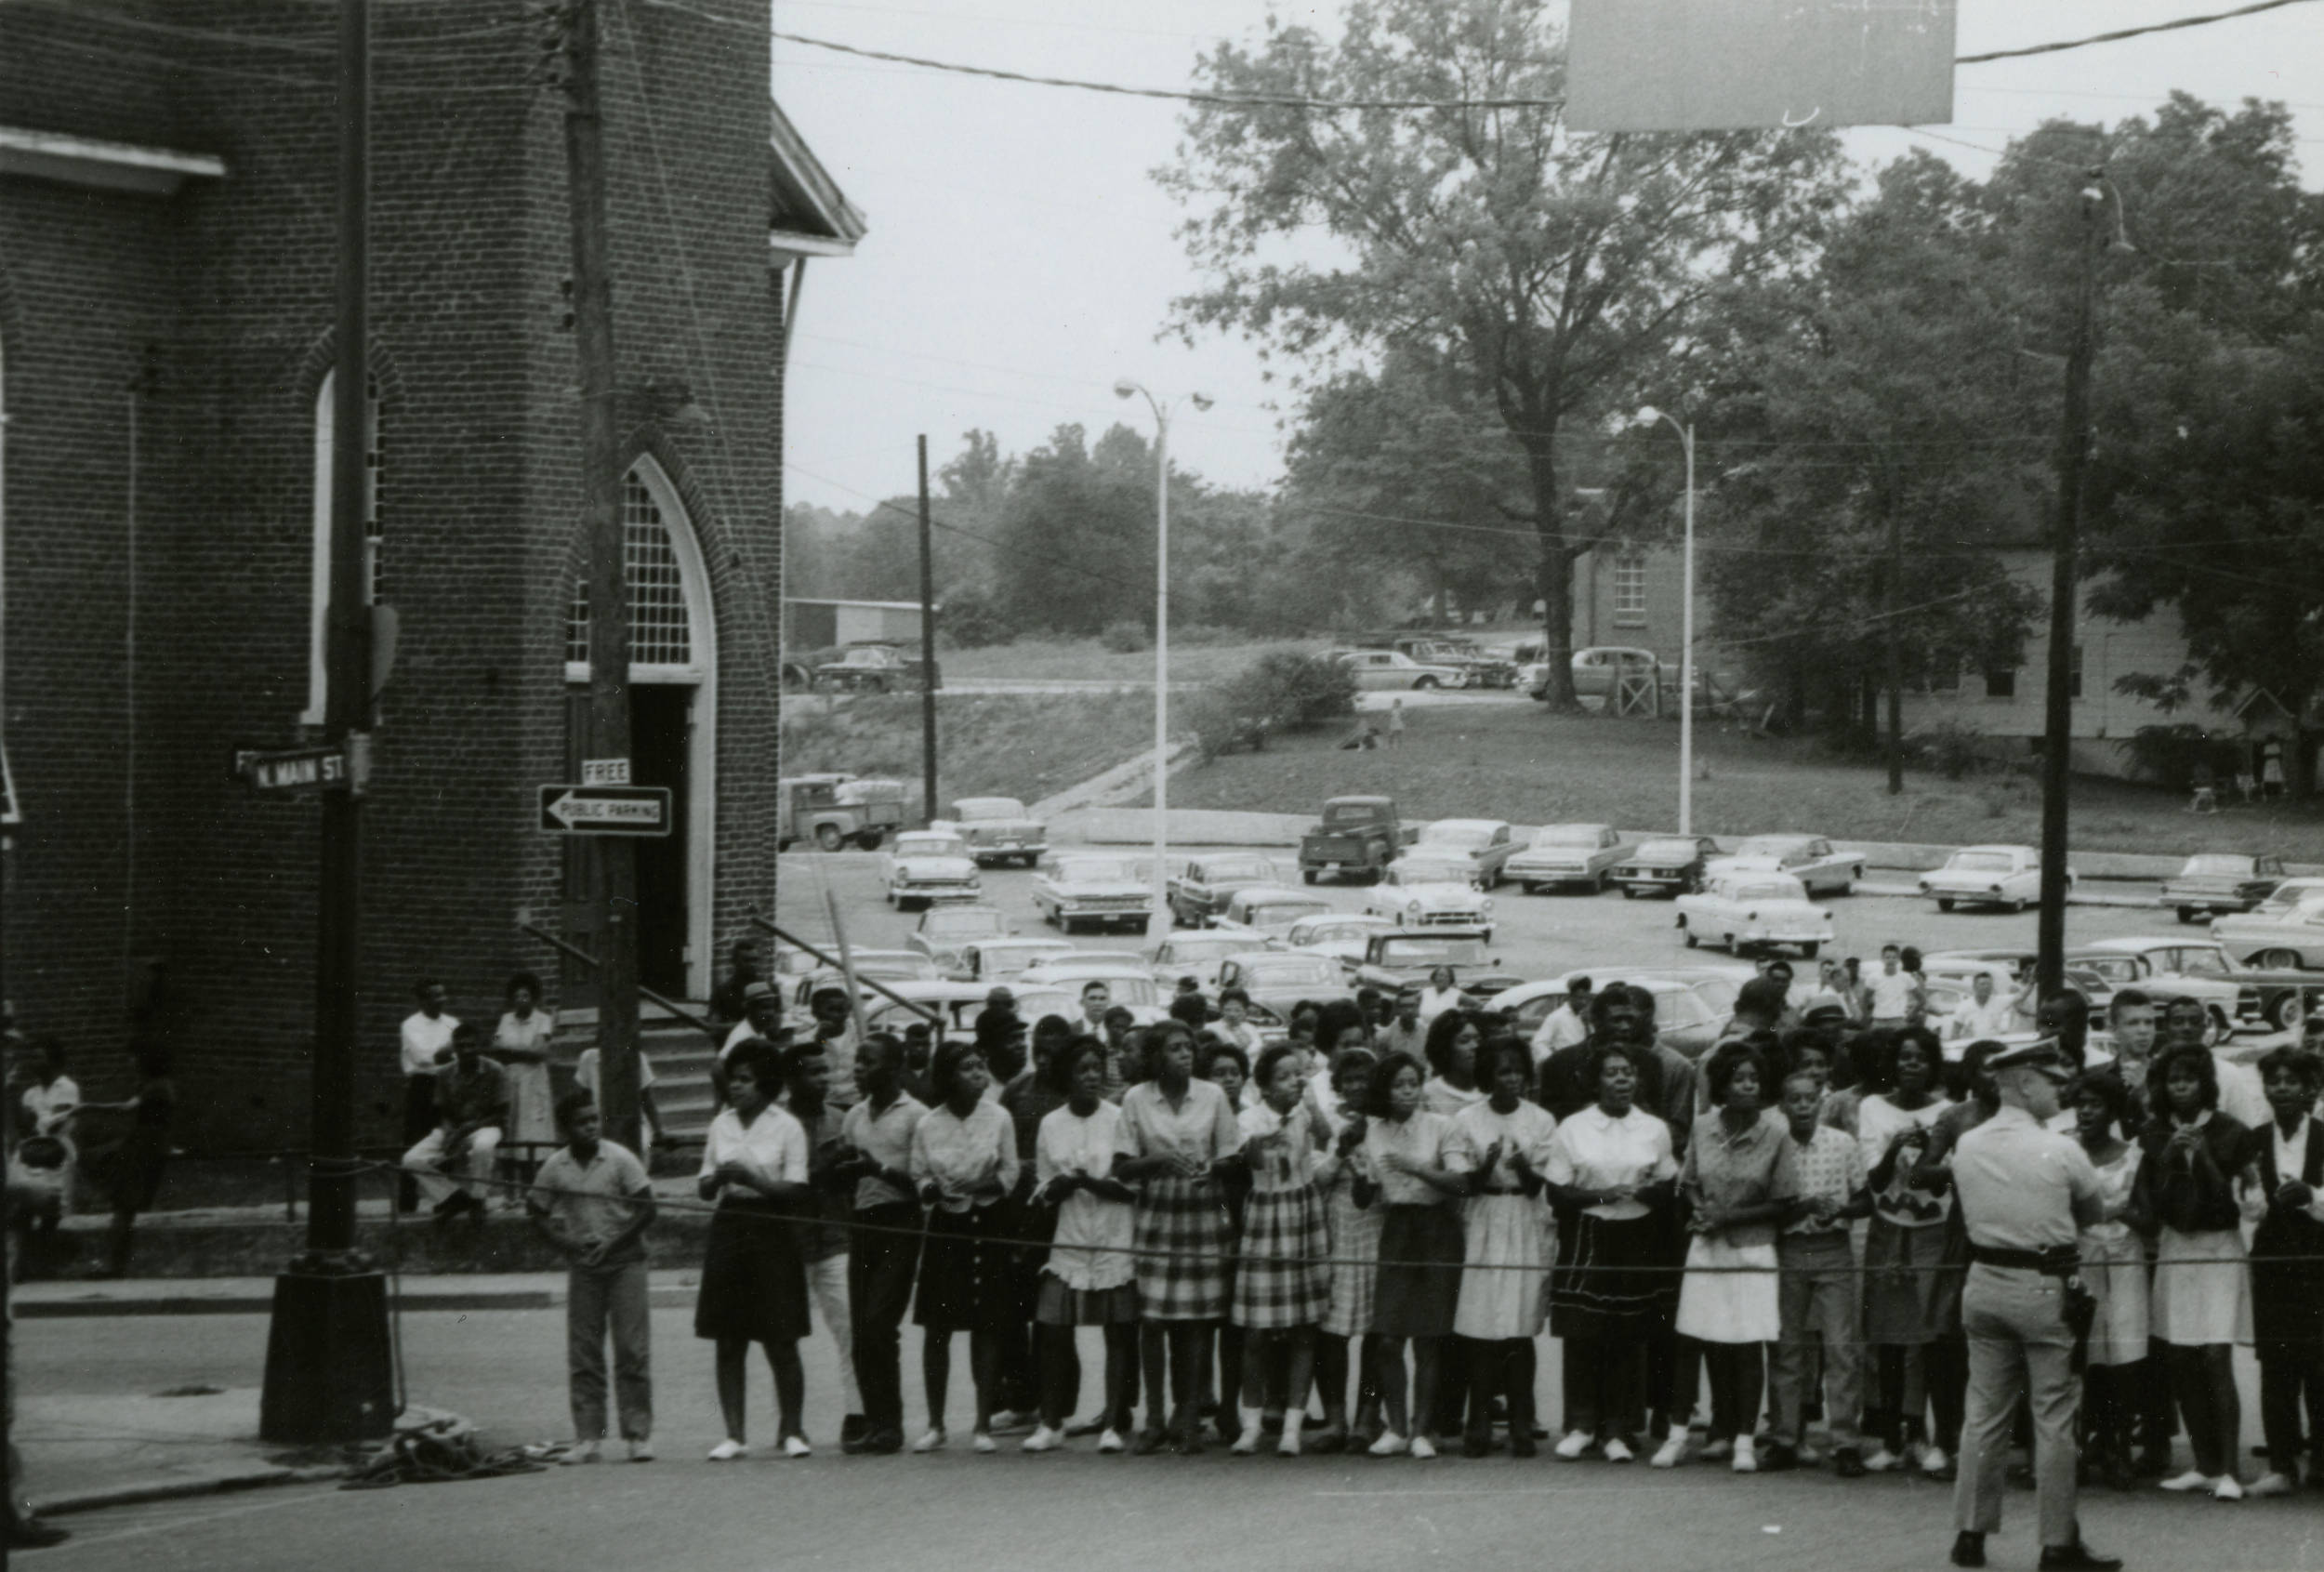 An image of African American students outside of First Baptist Church, with law enforcement officers present